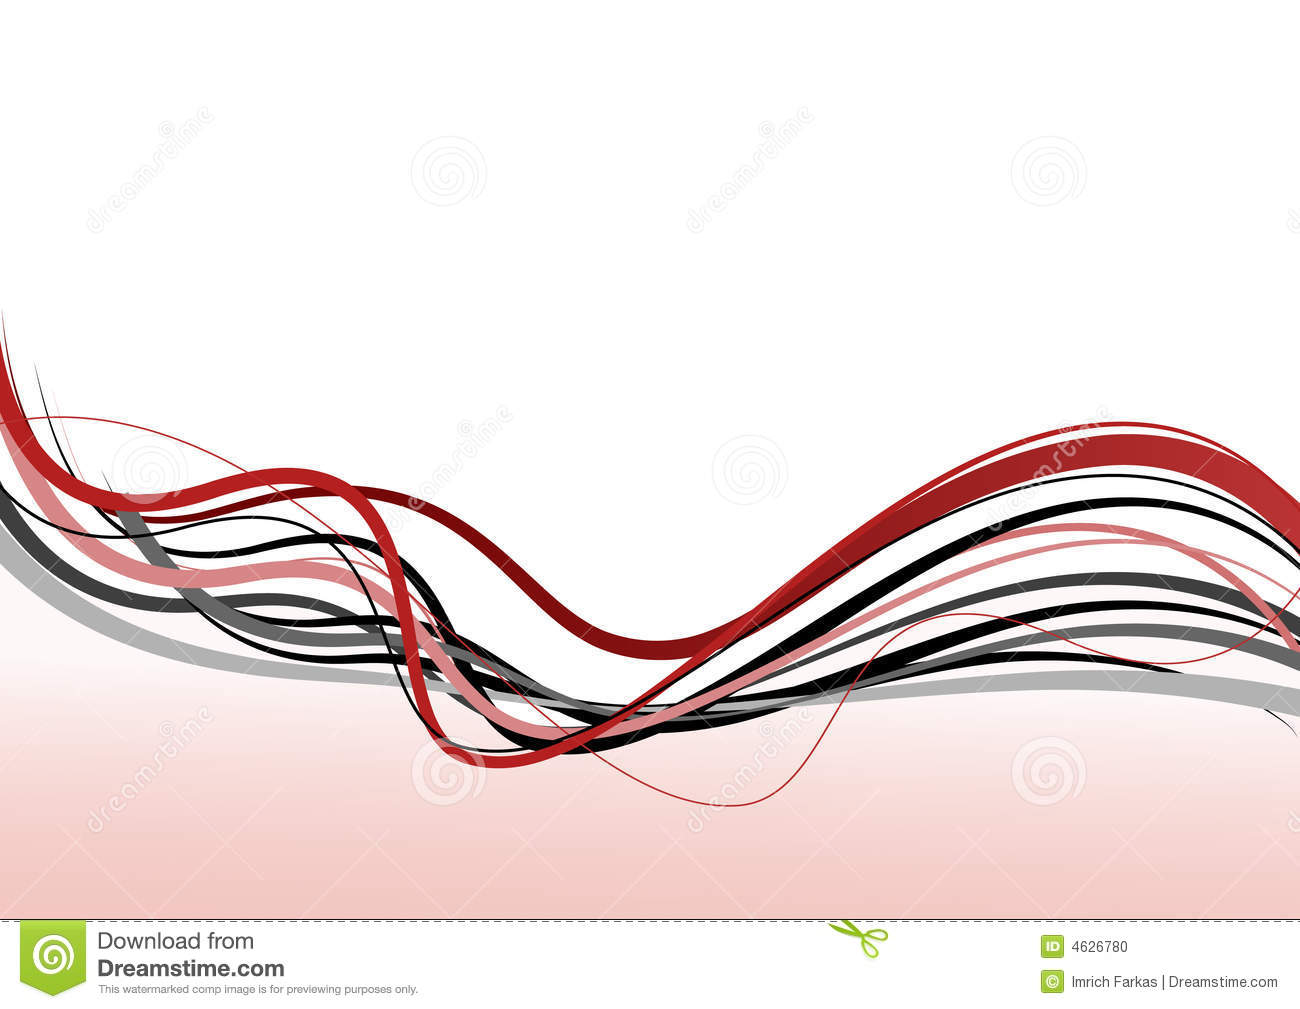 Line Art Design Abstract : Line vector graphics images design graphic